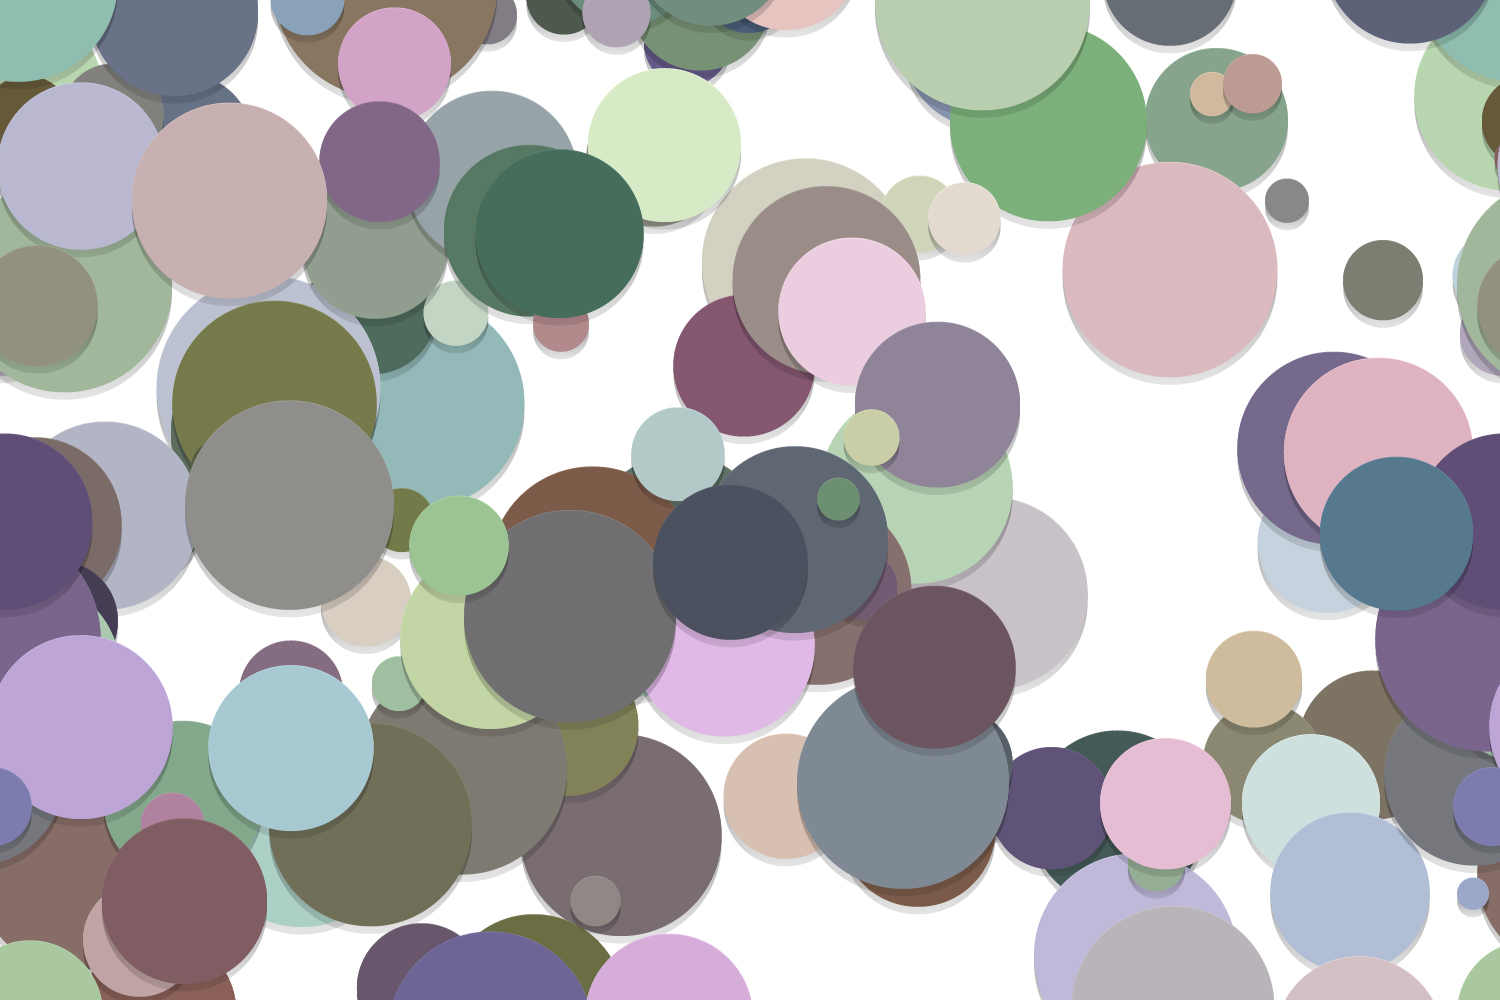 40 Seamless Circle Backgrounds (AI, EPS, JPG 5000x5000) example image 15